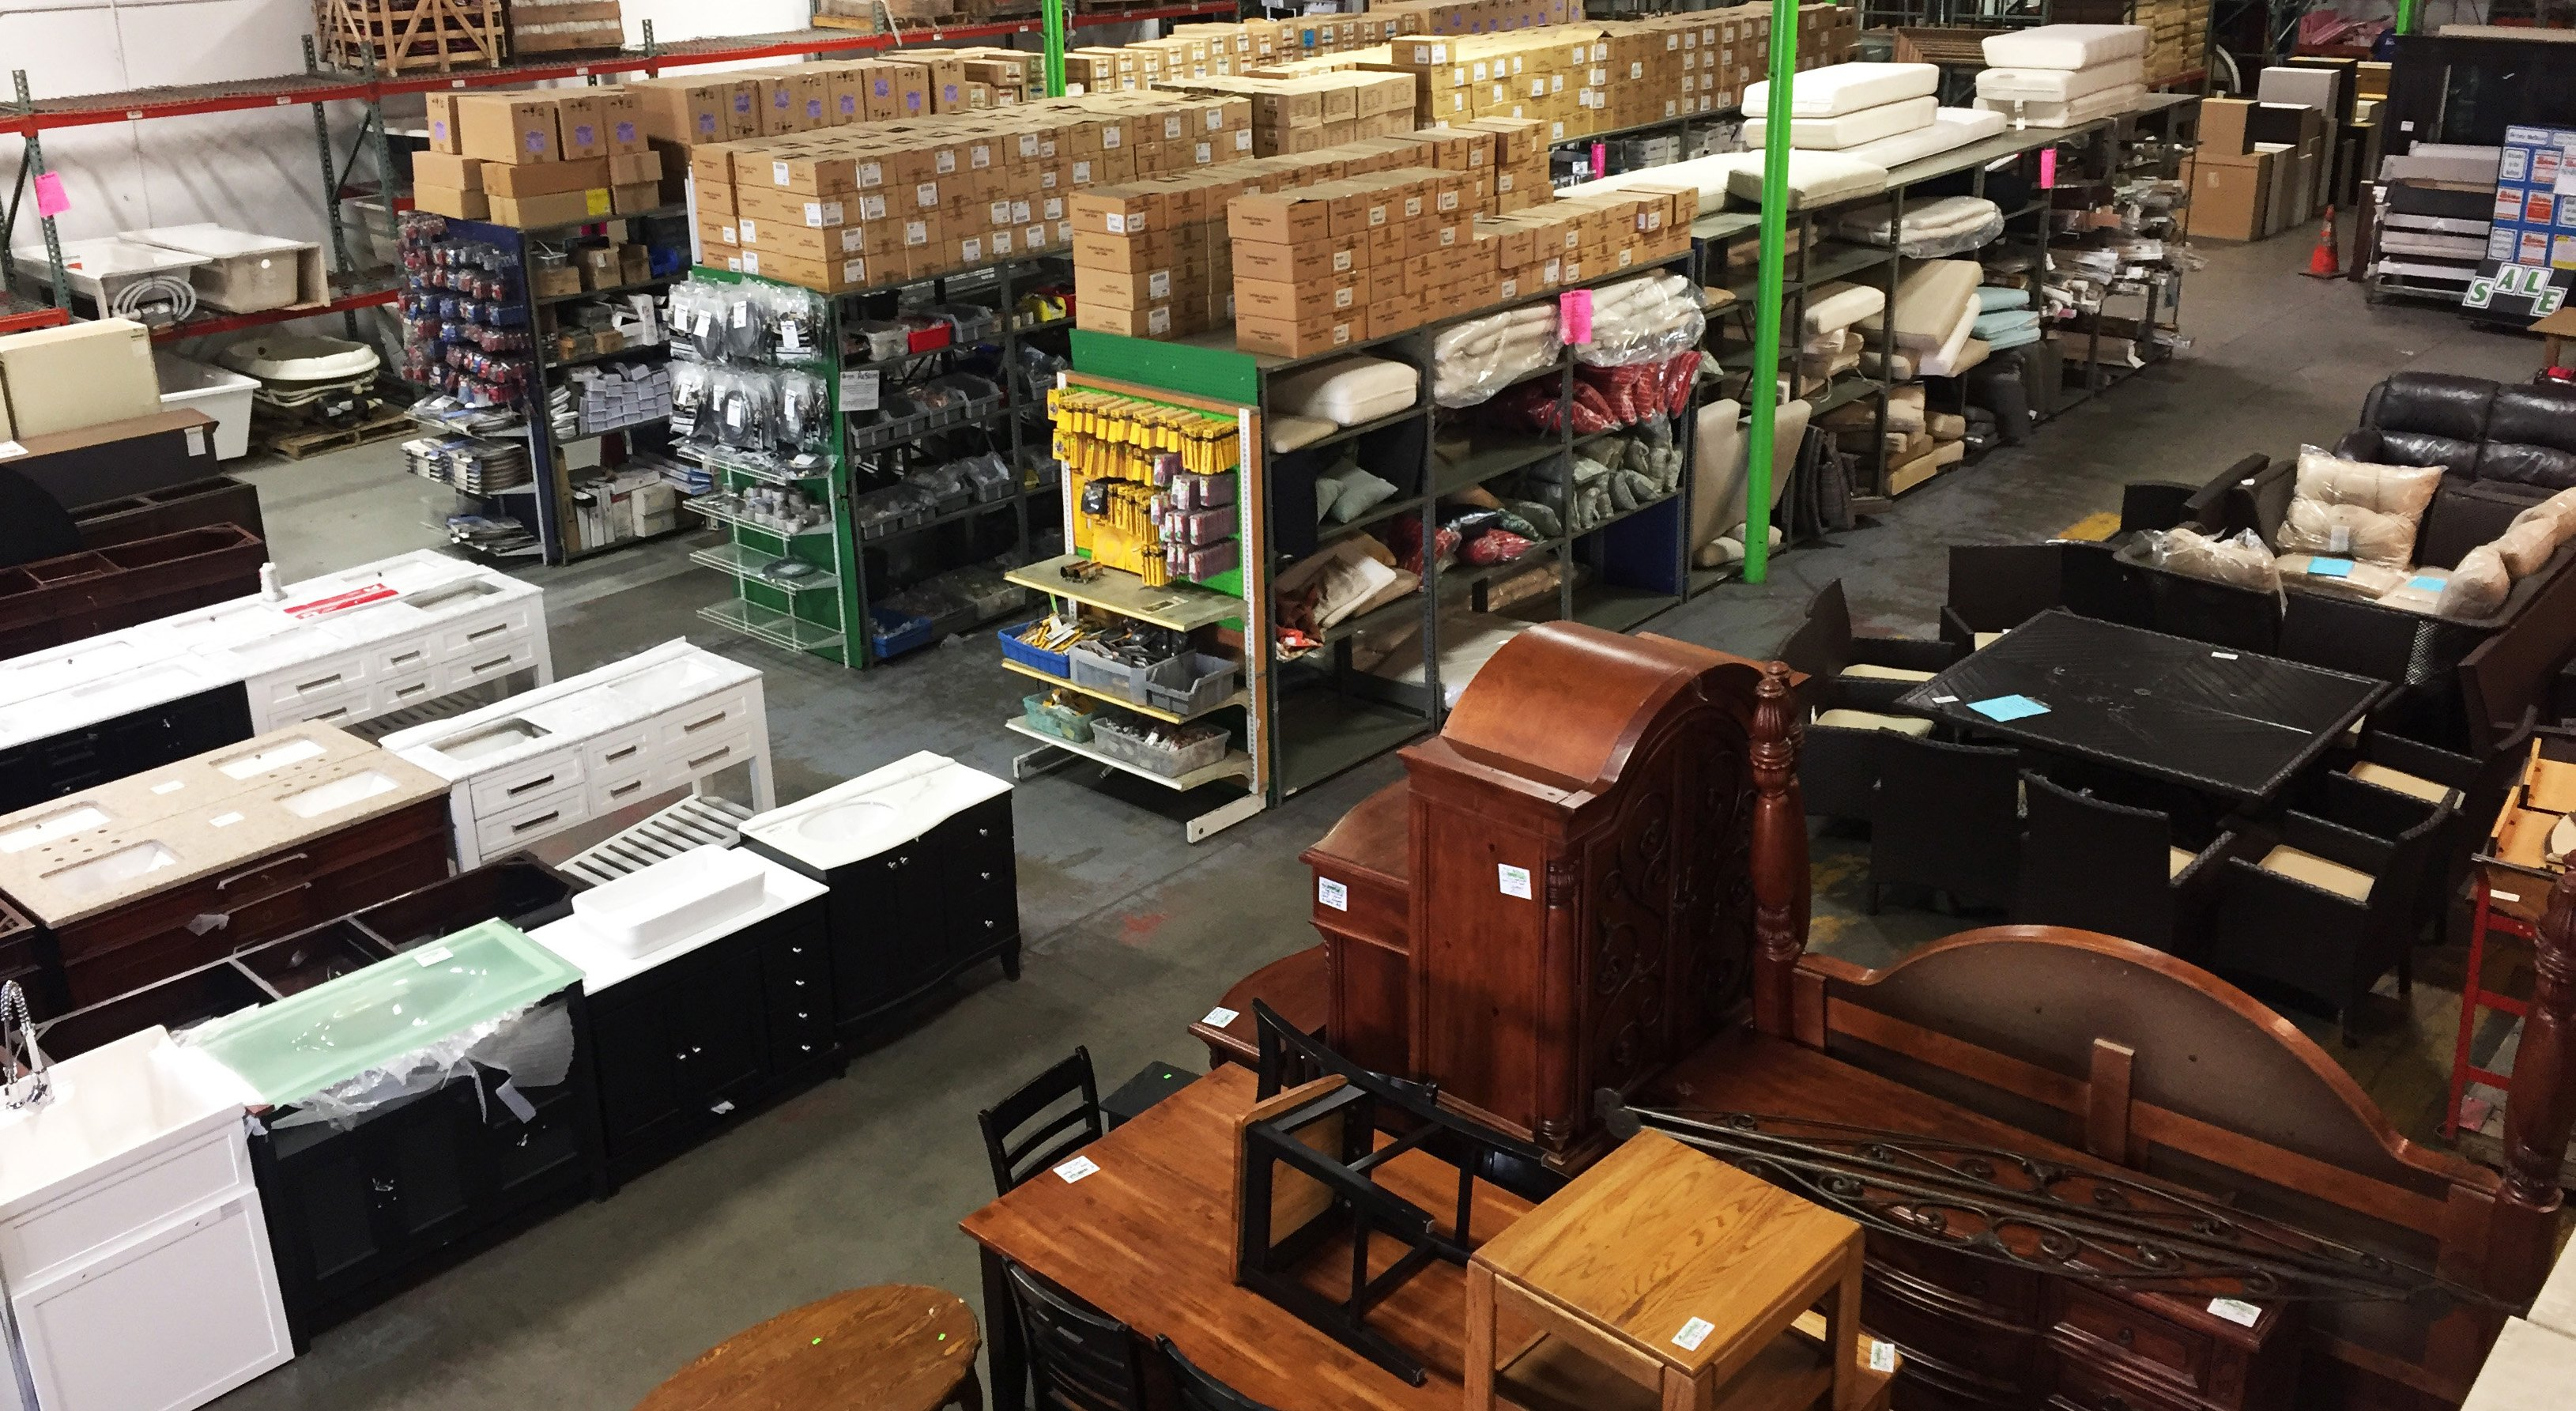 The Riverside ReStore offers a diverse selection of home improvement items, home decor, furniture, tools, supplies, DIY, windows, doors,